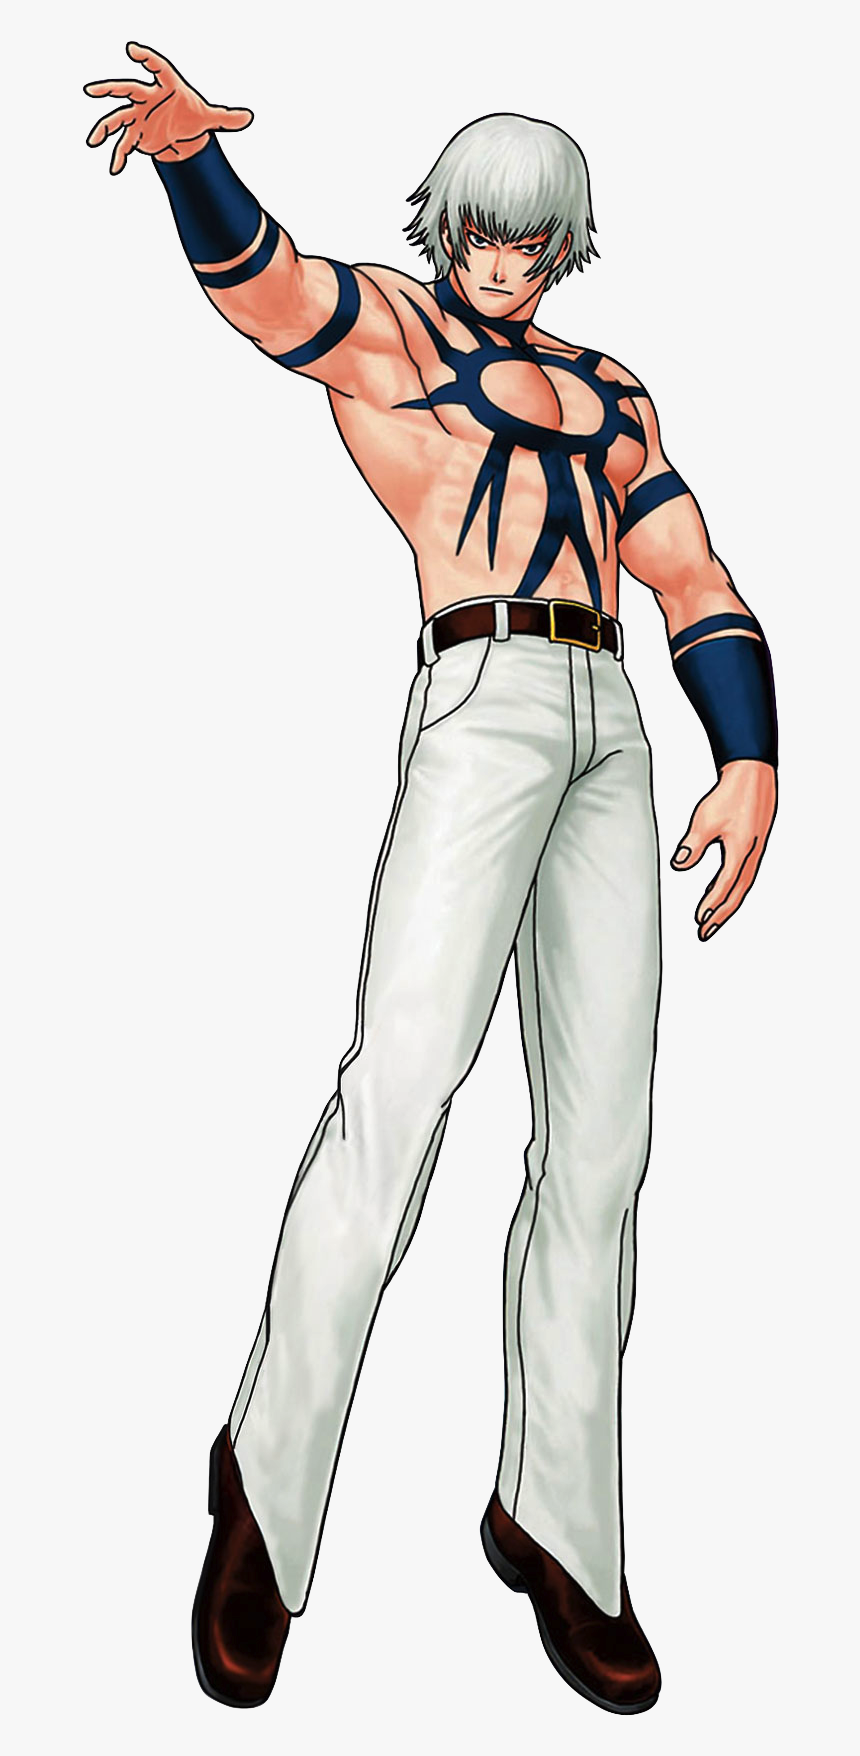 Orochi Kof98 Ultimate Match Rugal King Of Fighters 2002 Hd Png